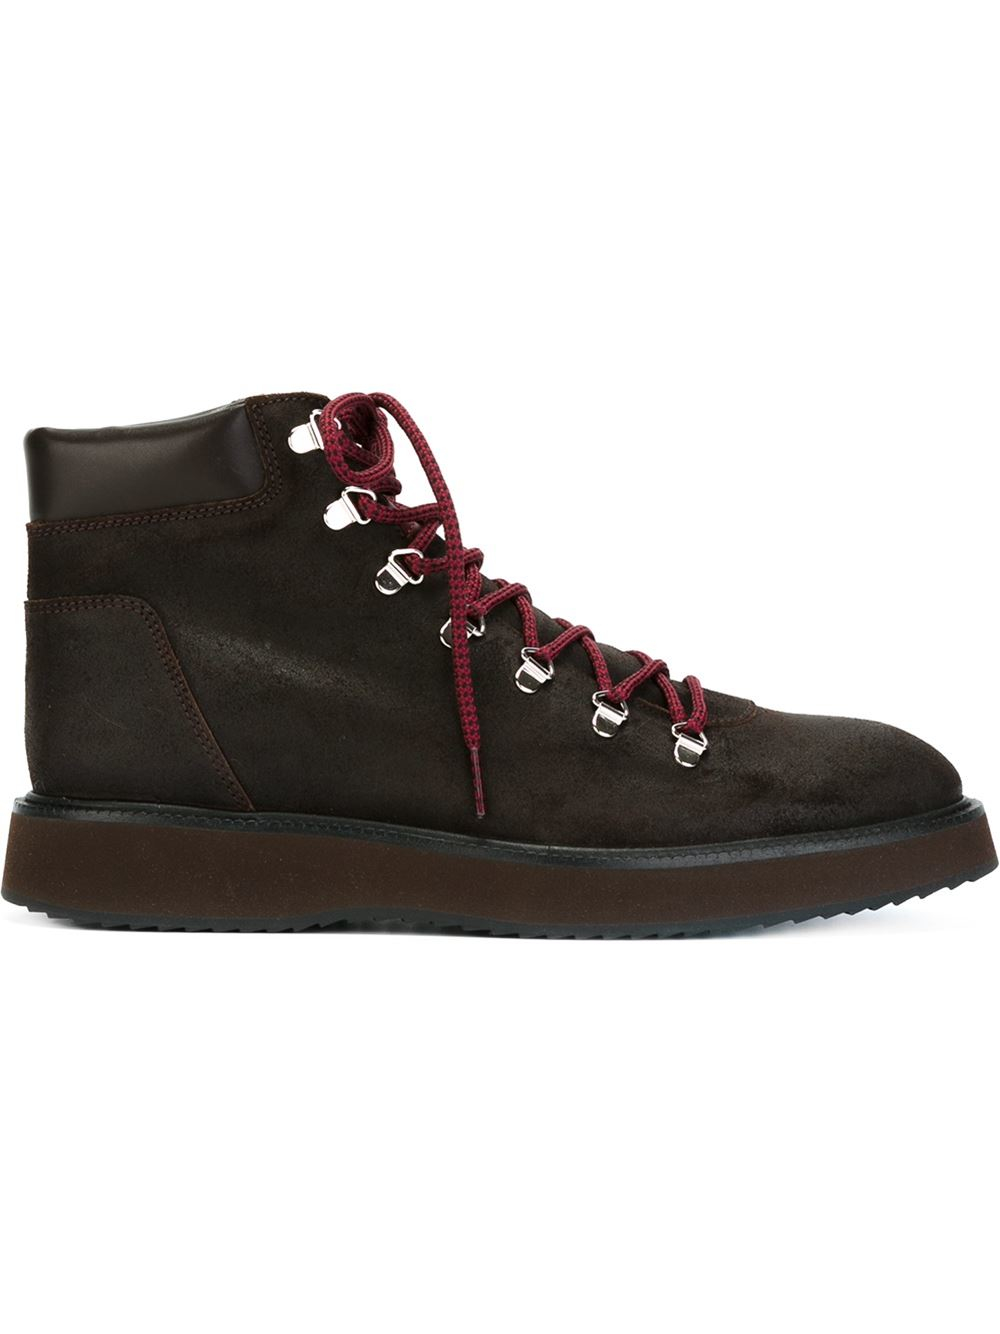 Hogan Lace Up Hiking Boots In Brown For Men Lyst